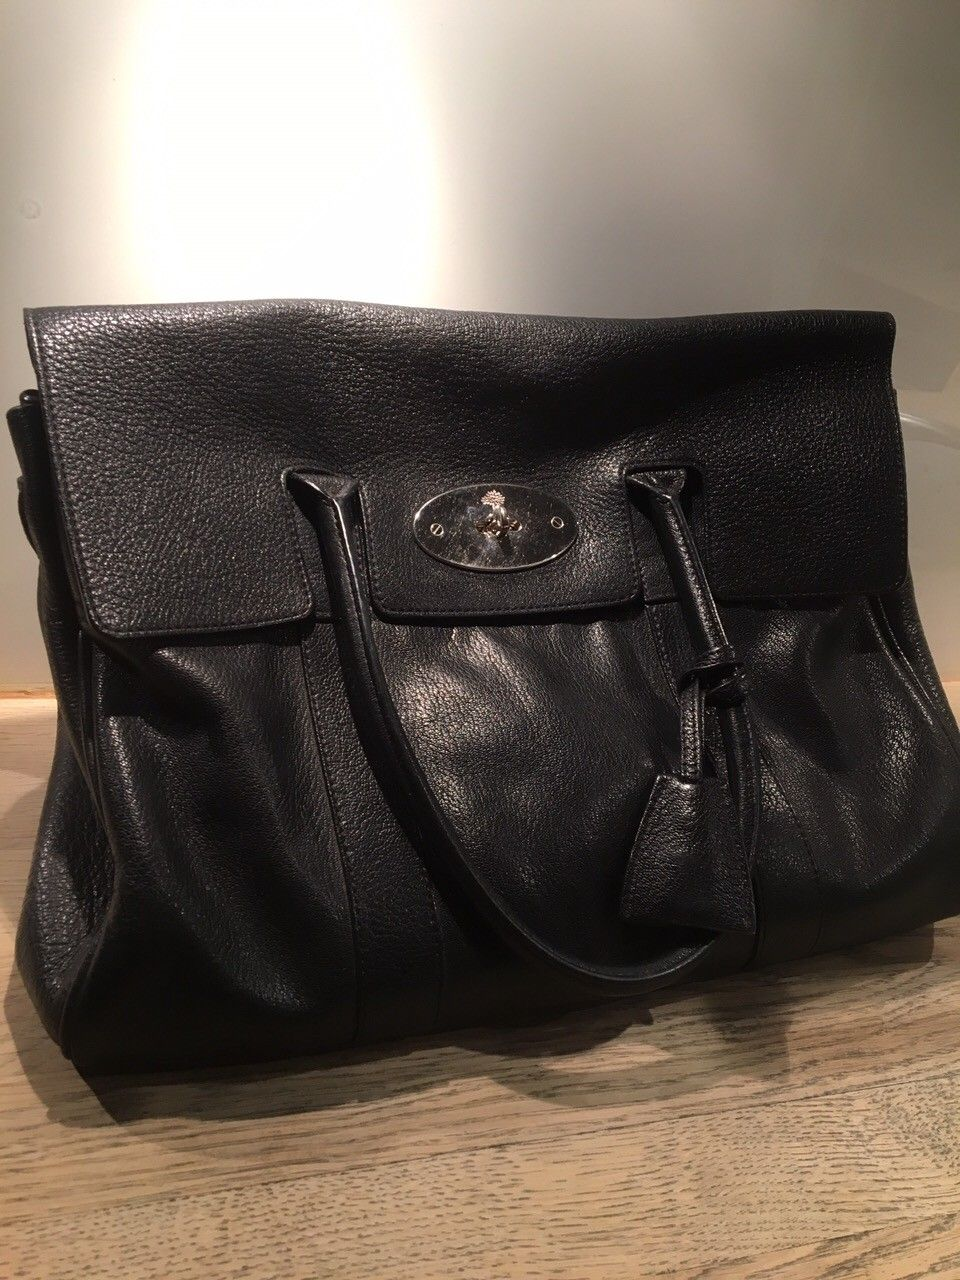 bafba4fce591 ... coupon code for mulberry bayswater glossy goat finn.no 4debc f2a0f